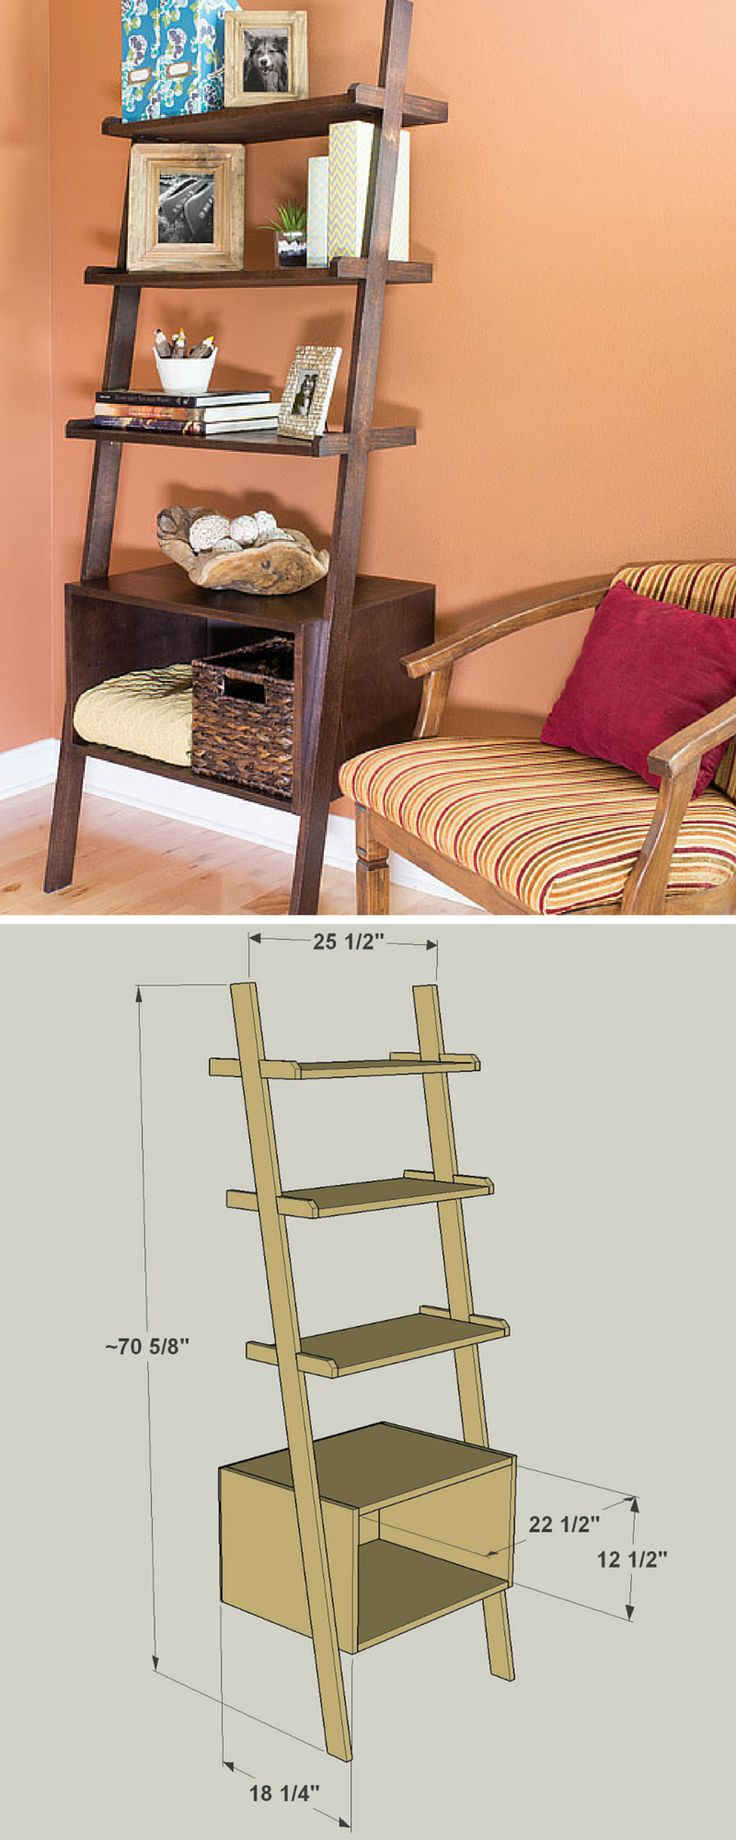 #woodworkingplans #woodworking #woodworkingprojects Here's proof that DIY projects don't have to be all about straight lines and square corners. These attractive shelves feature angled legs that might look like they add complexity. Truth is, they're not tough to build at all. Plus, they look as good as the items you display on them. Get the free DIY plans at buildsomething.com